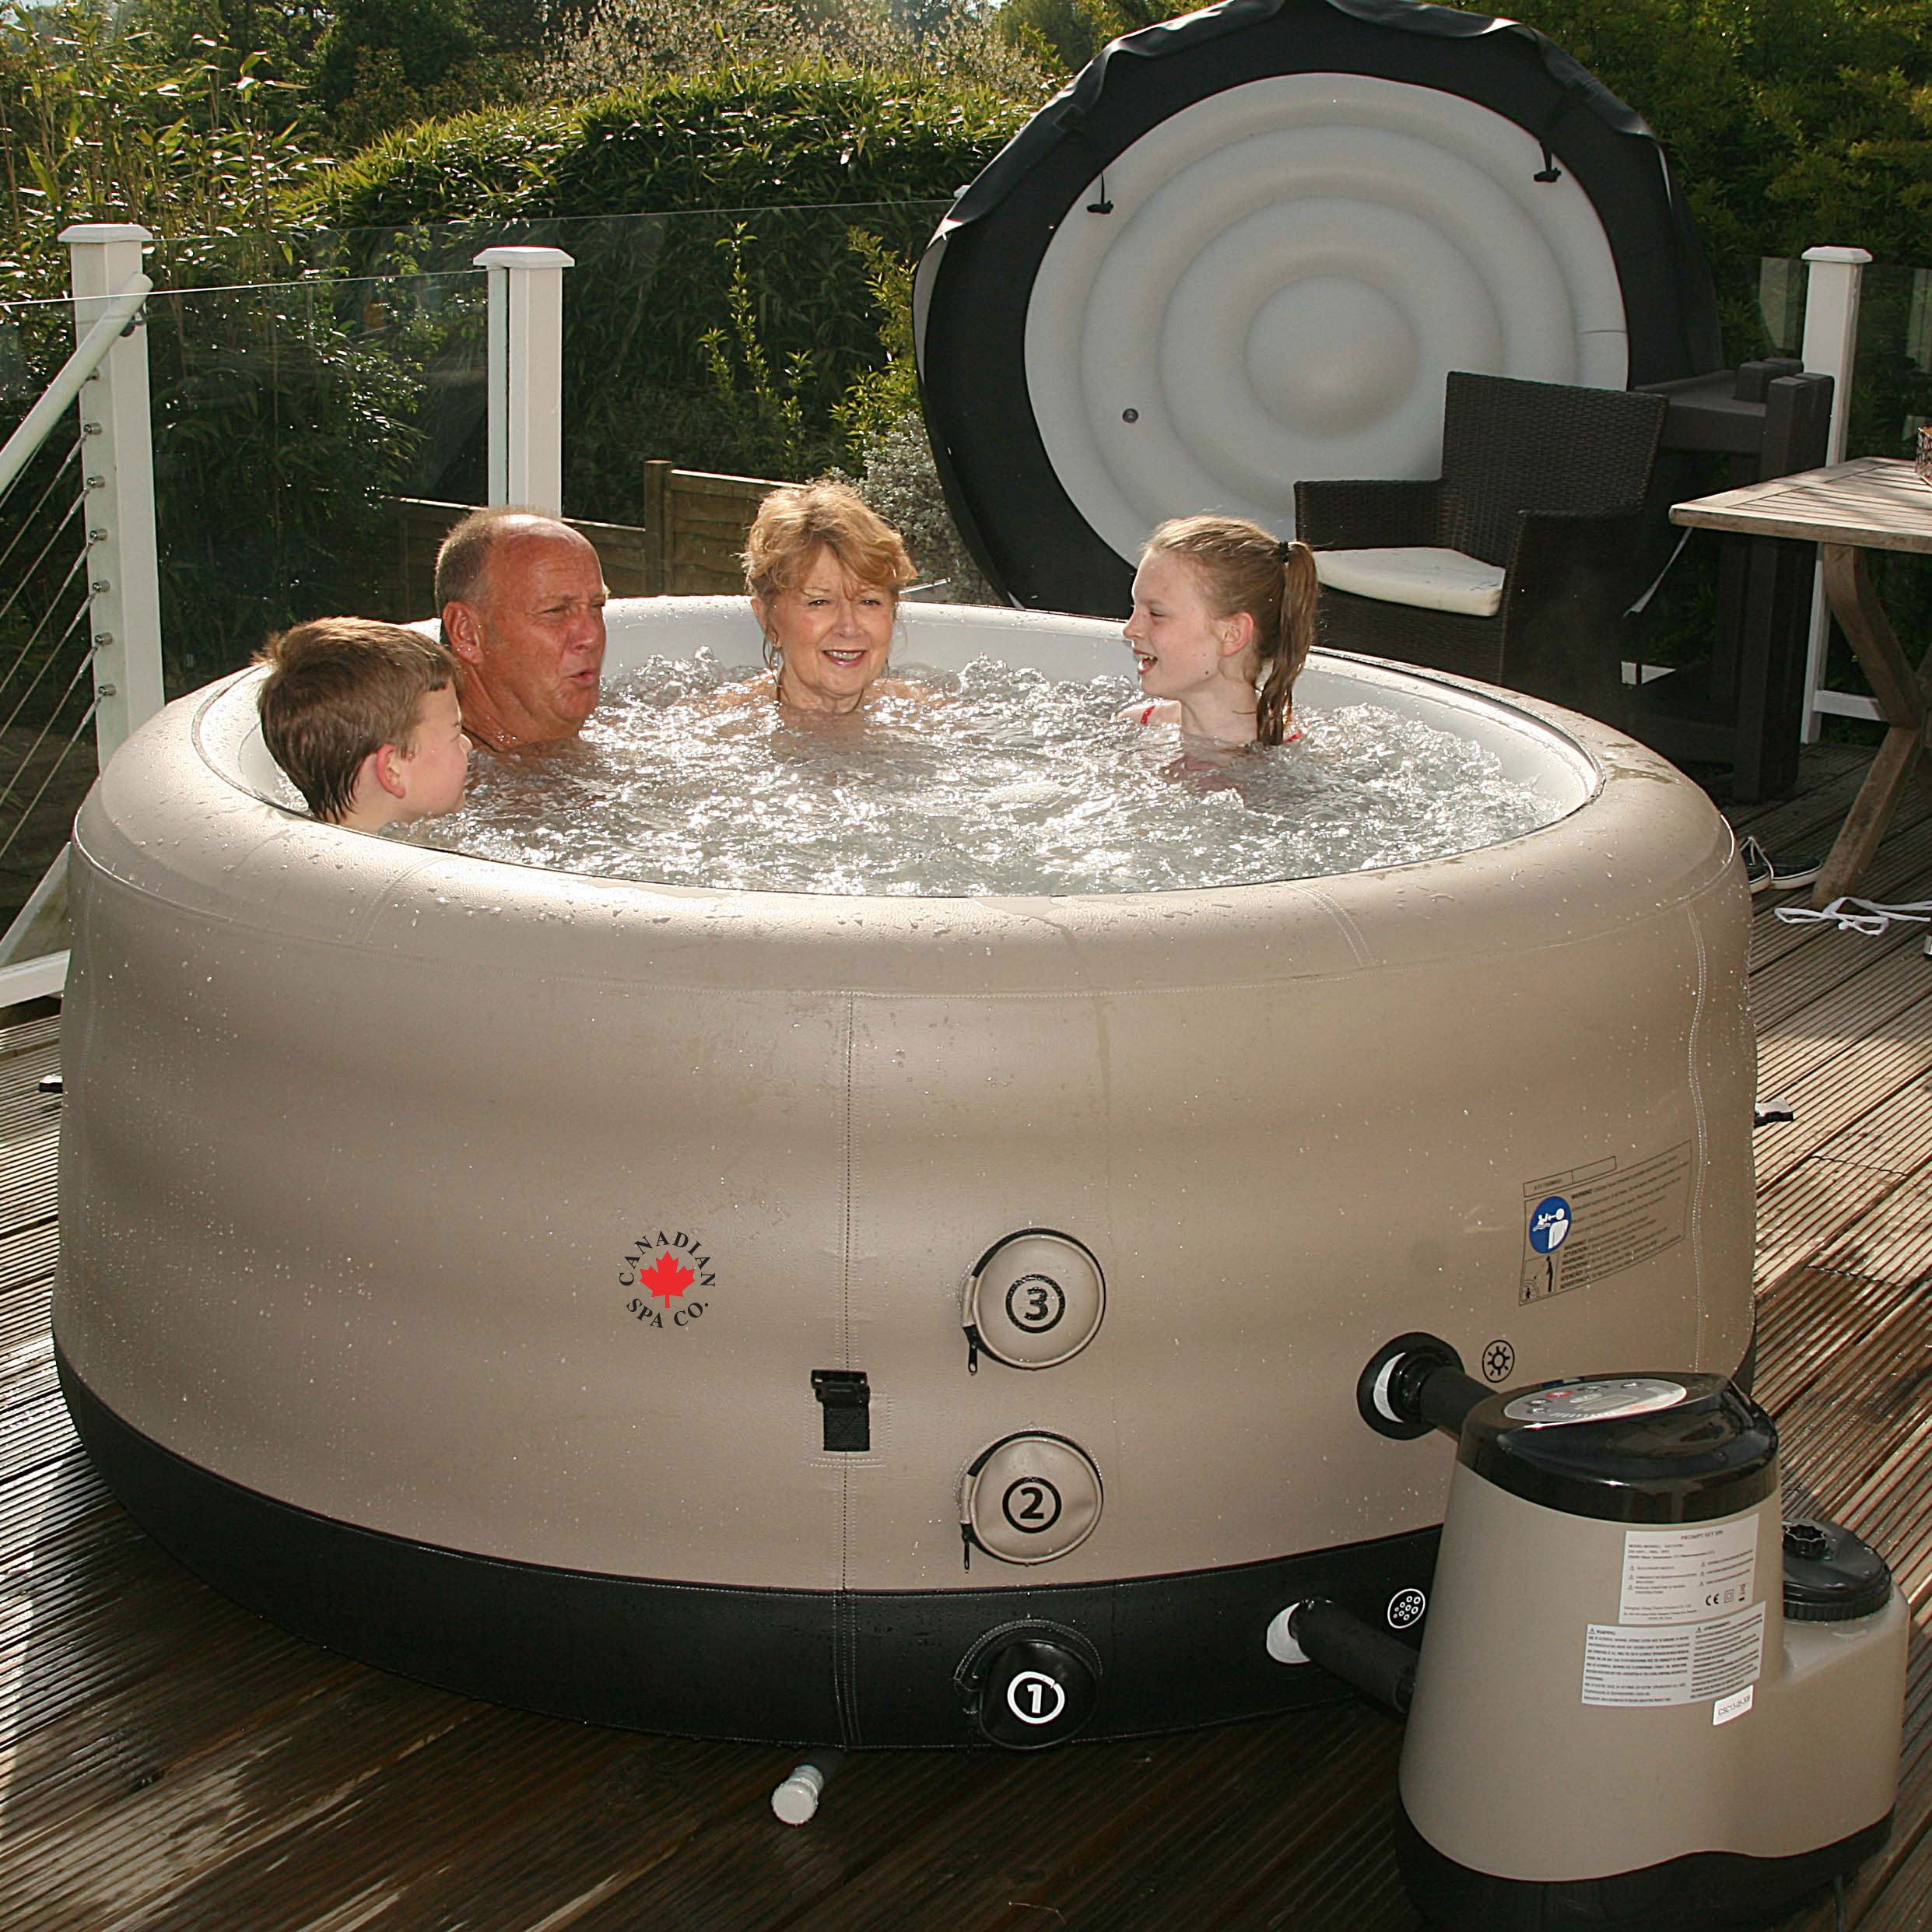 phantom tubs more tub warwickshire images person leisure award garden coast hot spas elite